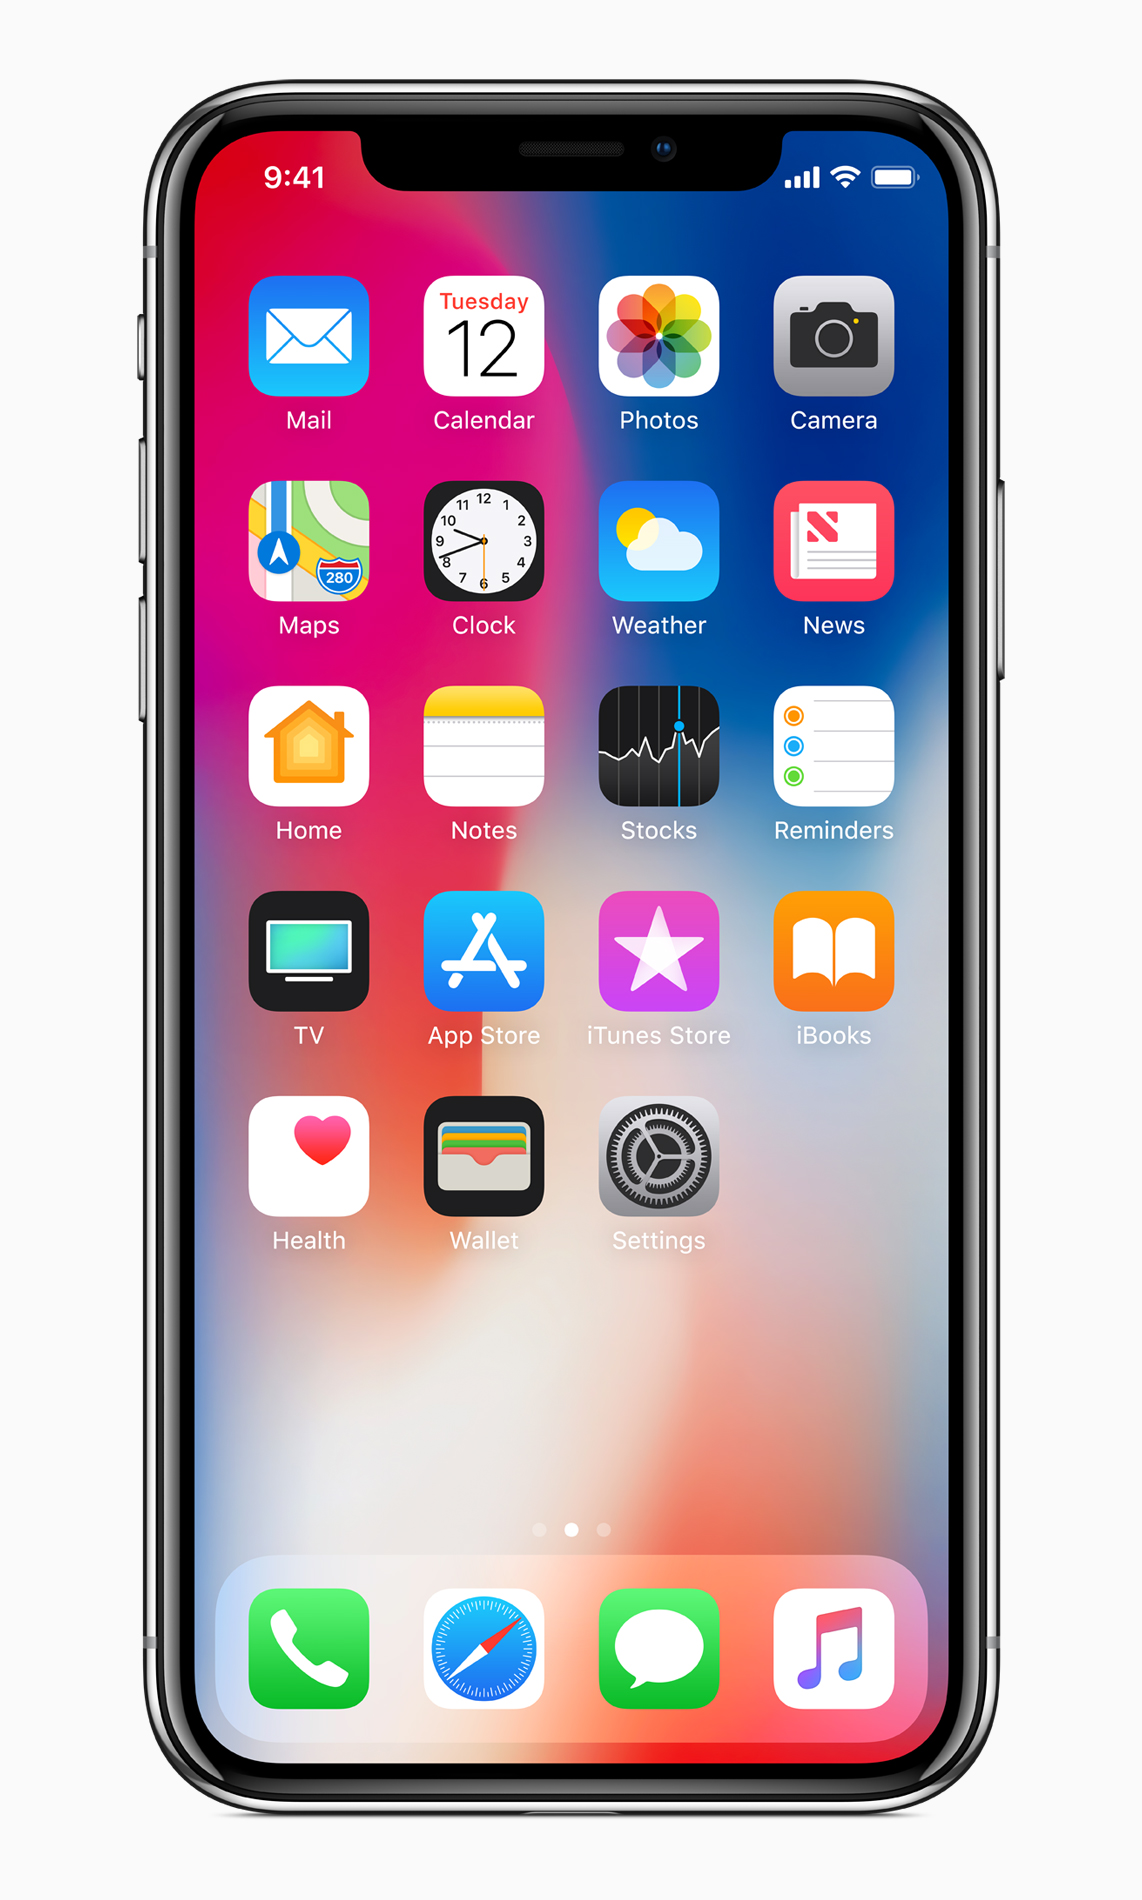 Iphone X Features 4 New Iphone X Features We Wish Android Had